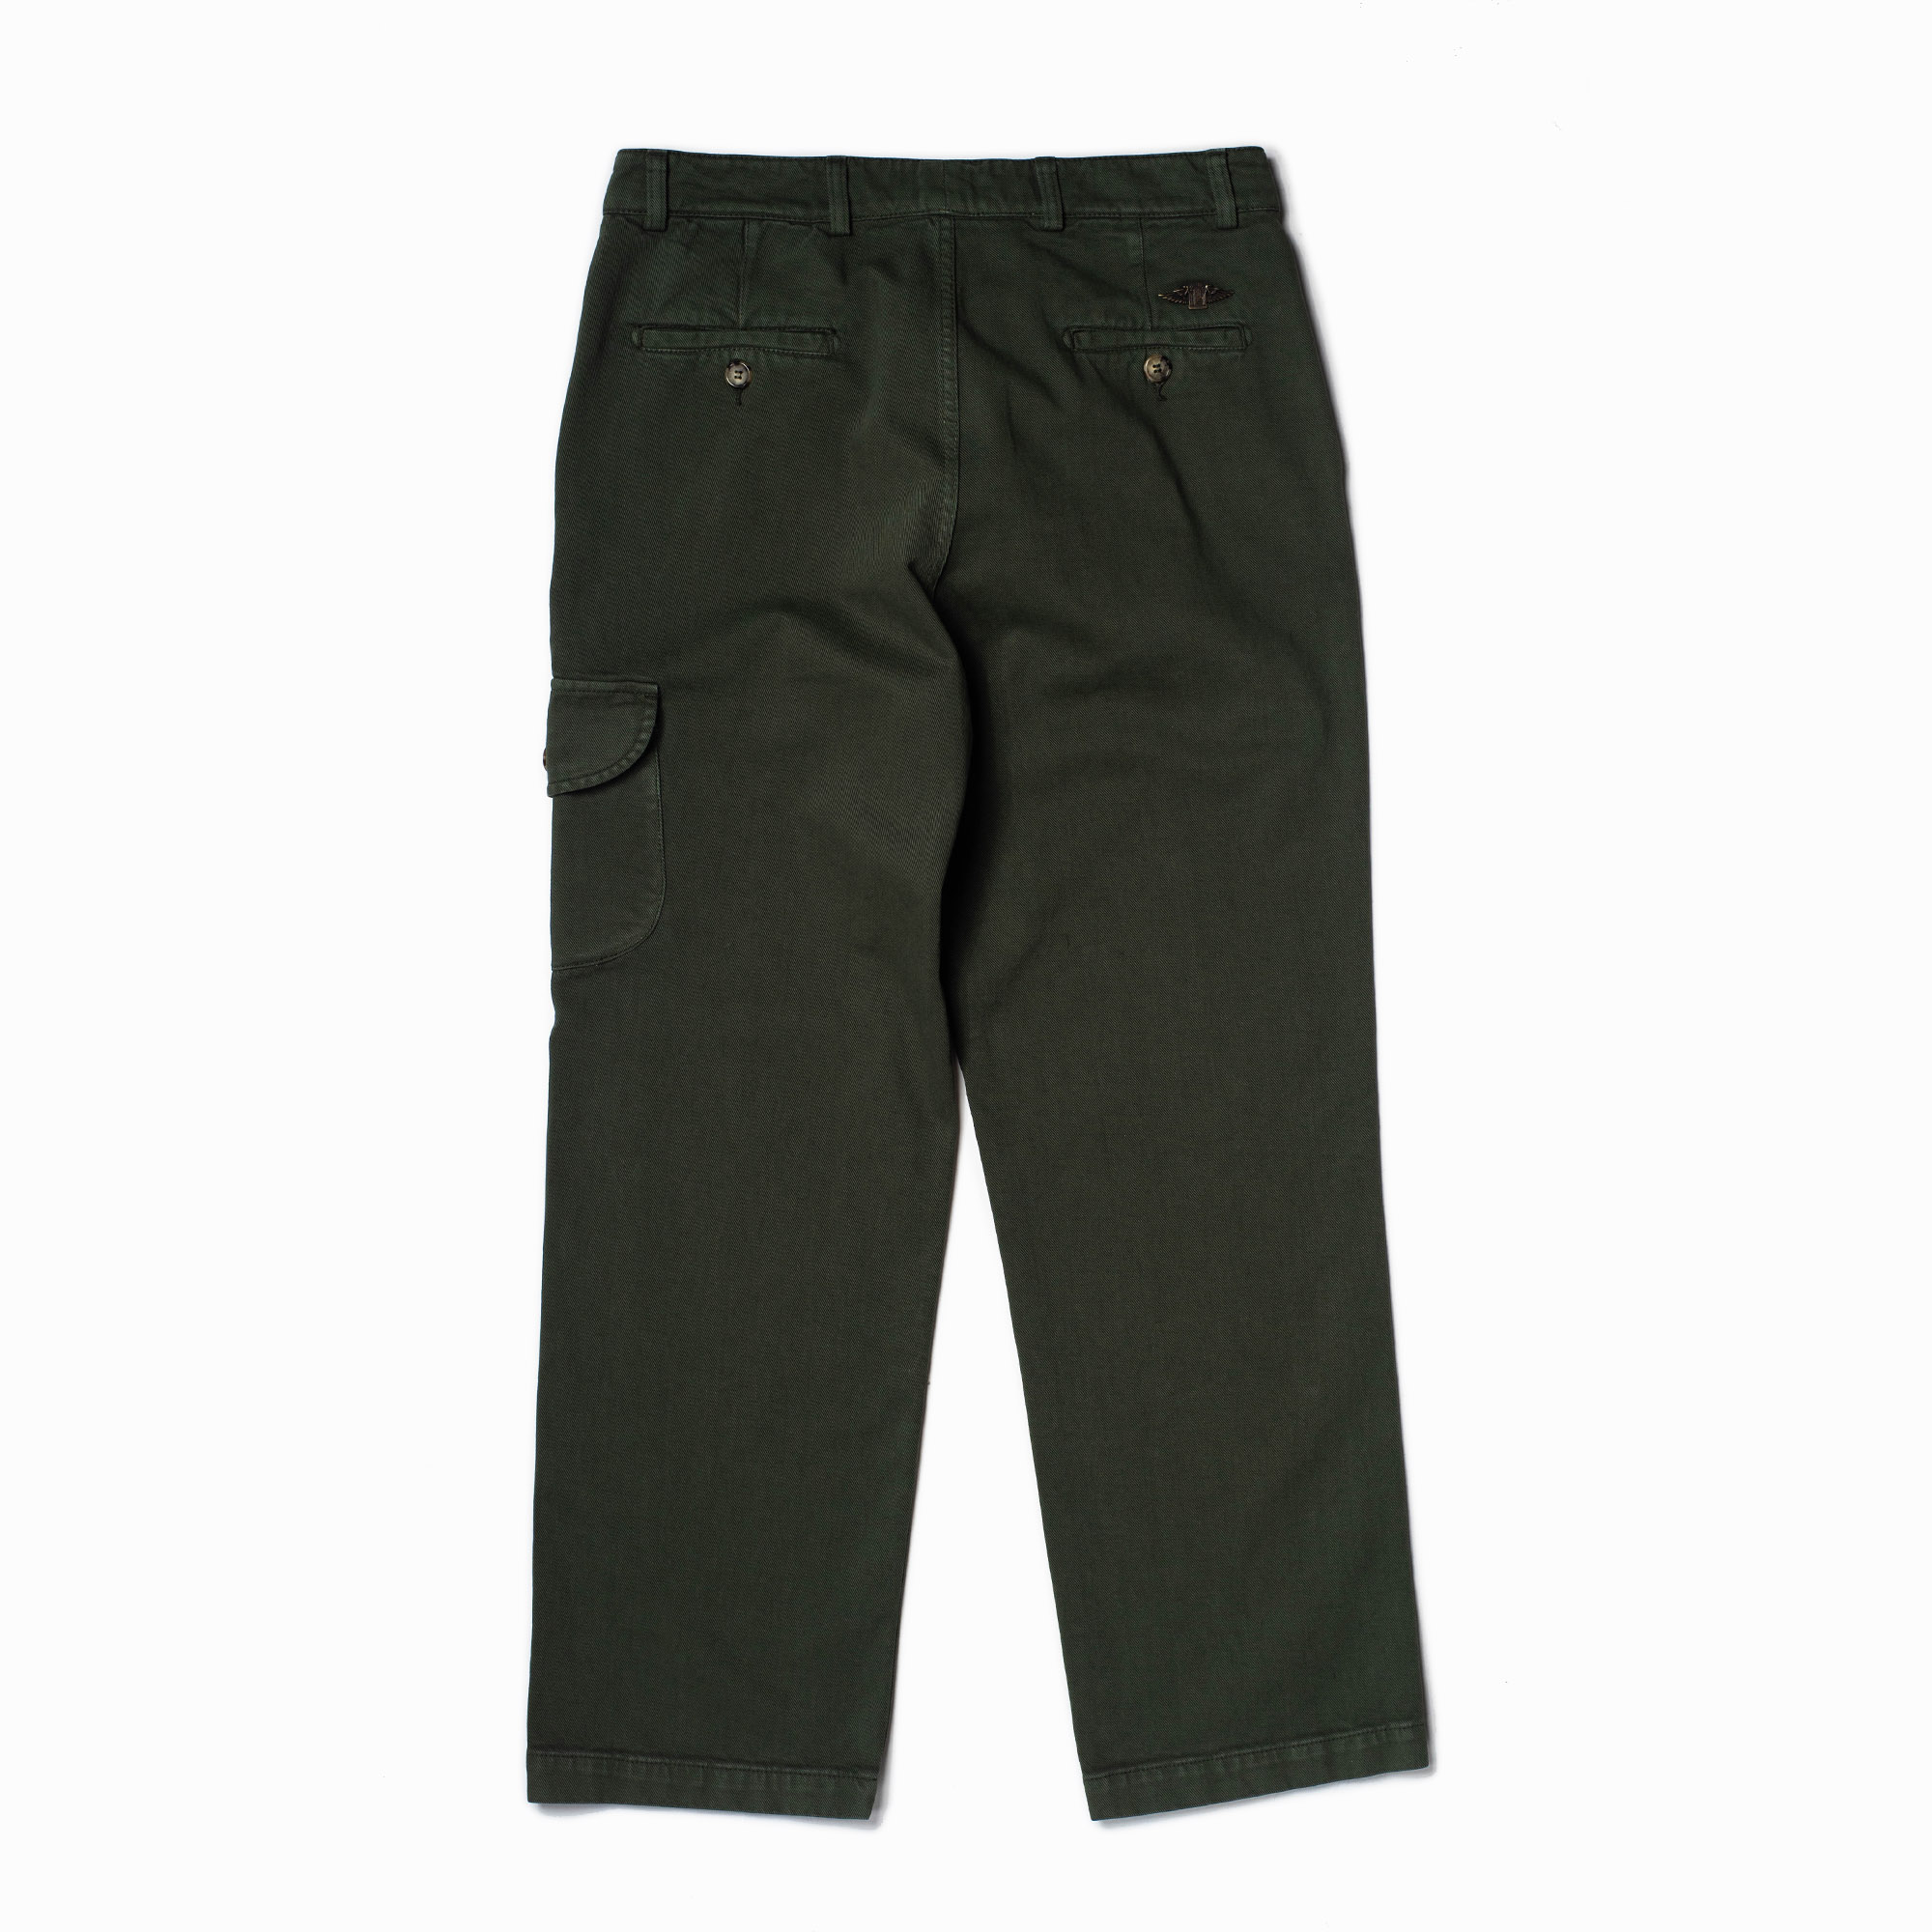 shangri-la-heritage-explorator-olive-cotton-twill-pants-still-life-back